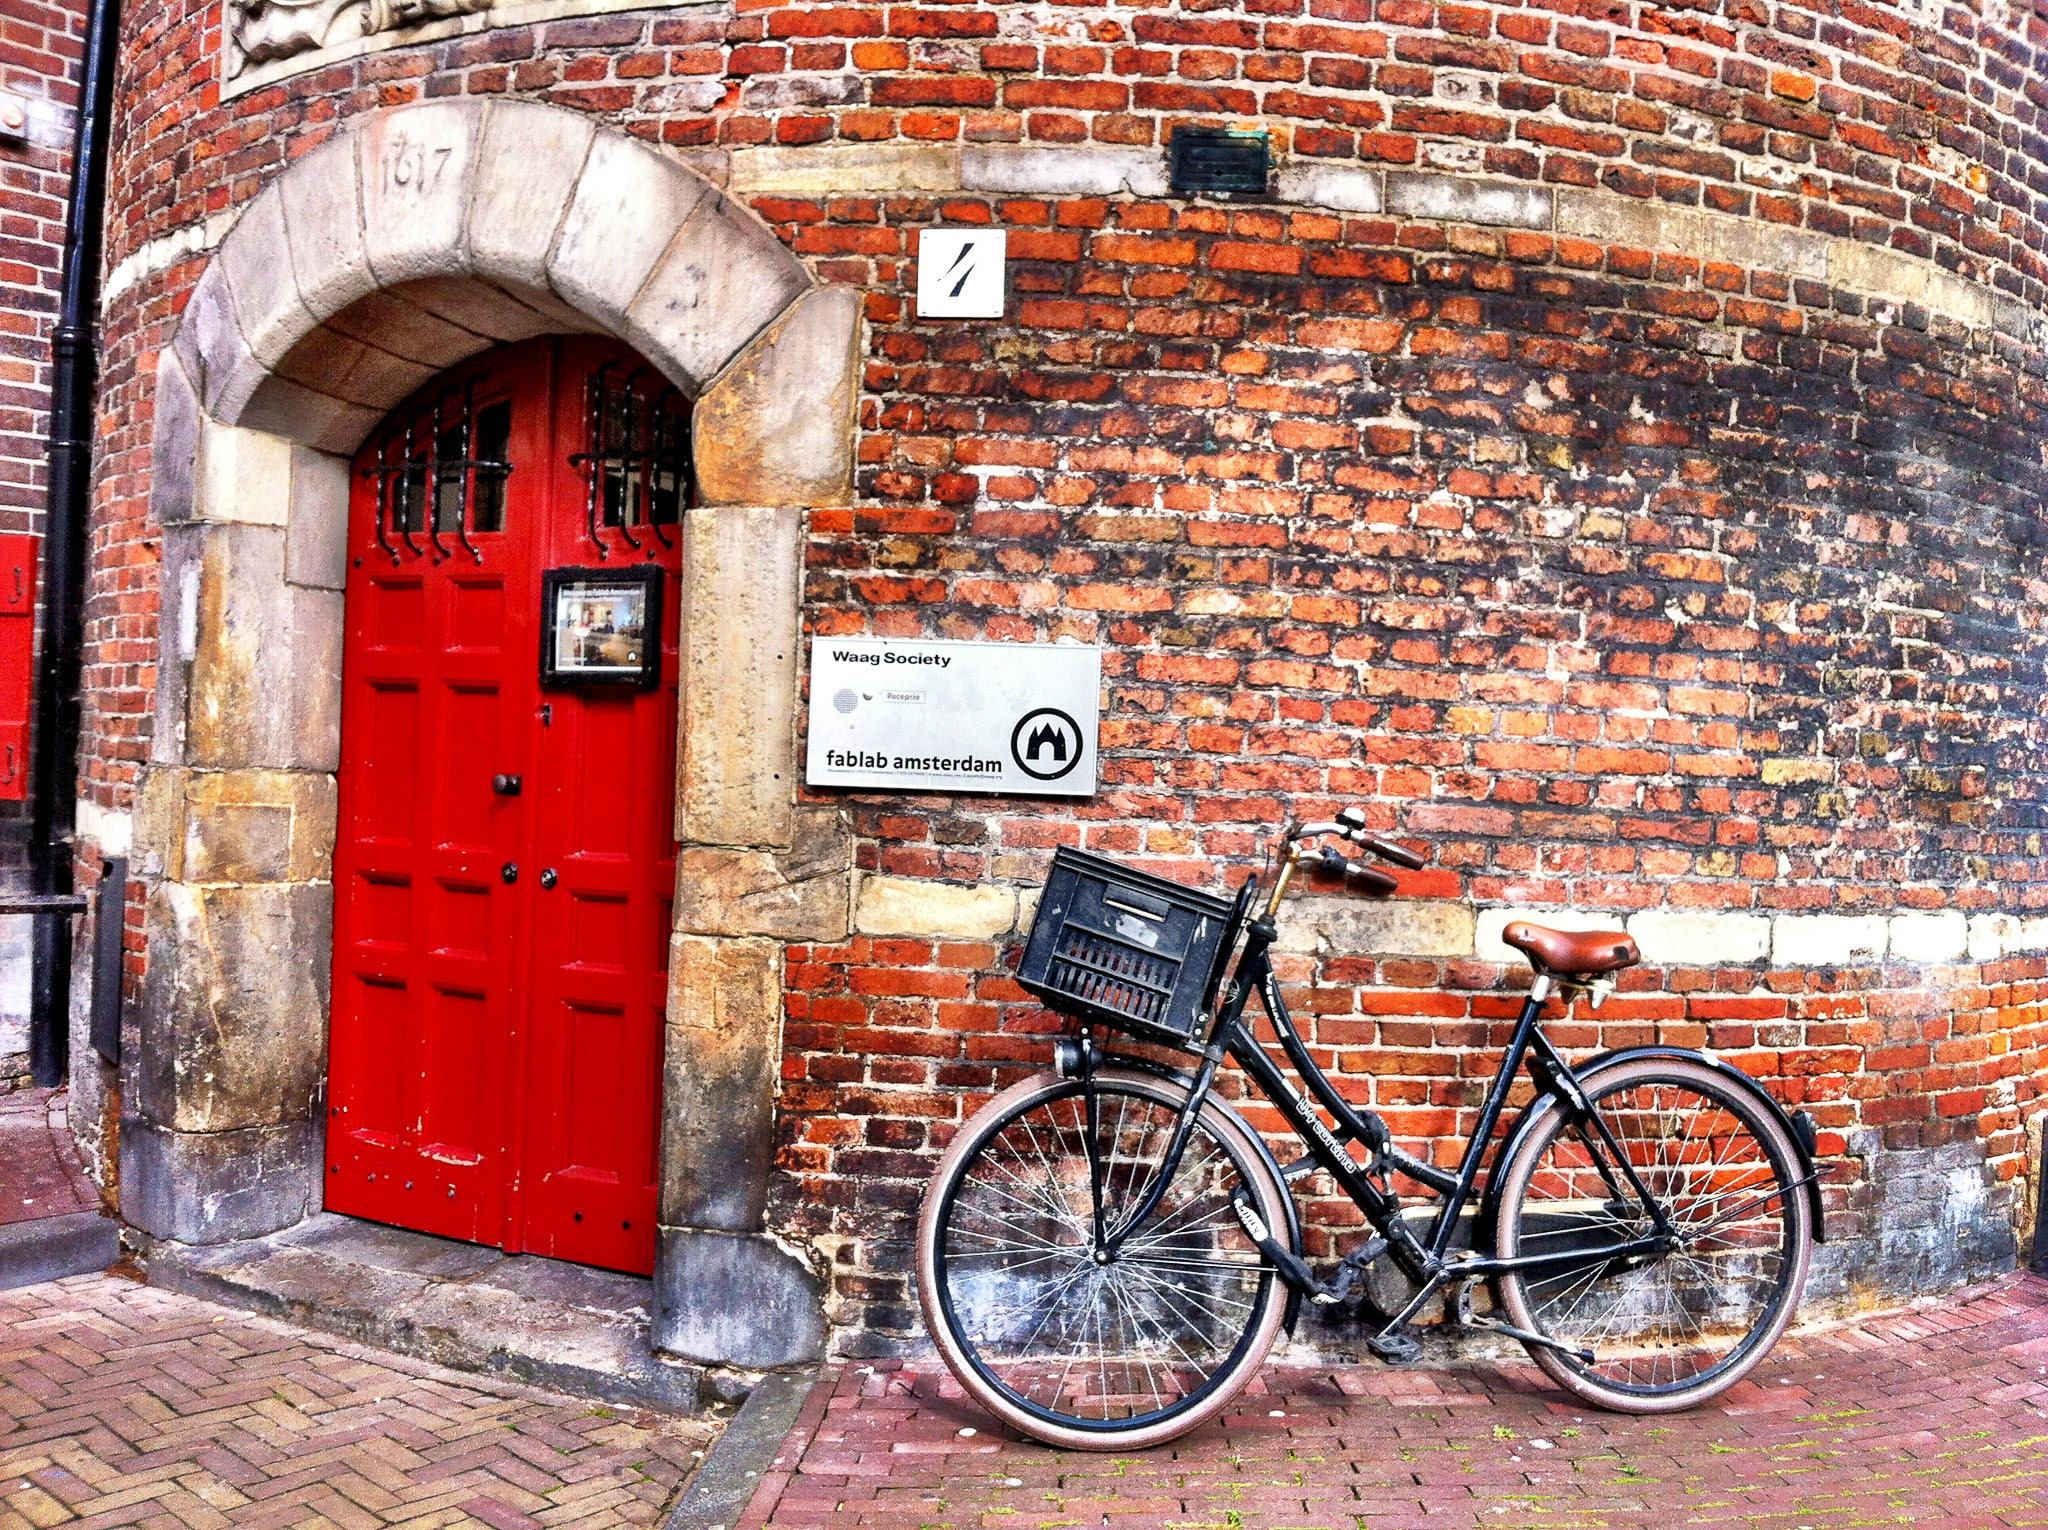 photograph of the Waag Society building, Nieuwmarkt, Amsterdam, showing the door to FabLab Amsterdam. the building is historic, brick, and the brick wall is curved and aged. the doorway is stone and the double door is red. there is a typical Amsterdam black bicycle parked near the door under a sign reading fablab amsterdam.